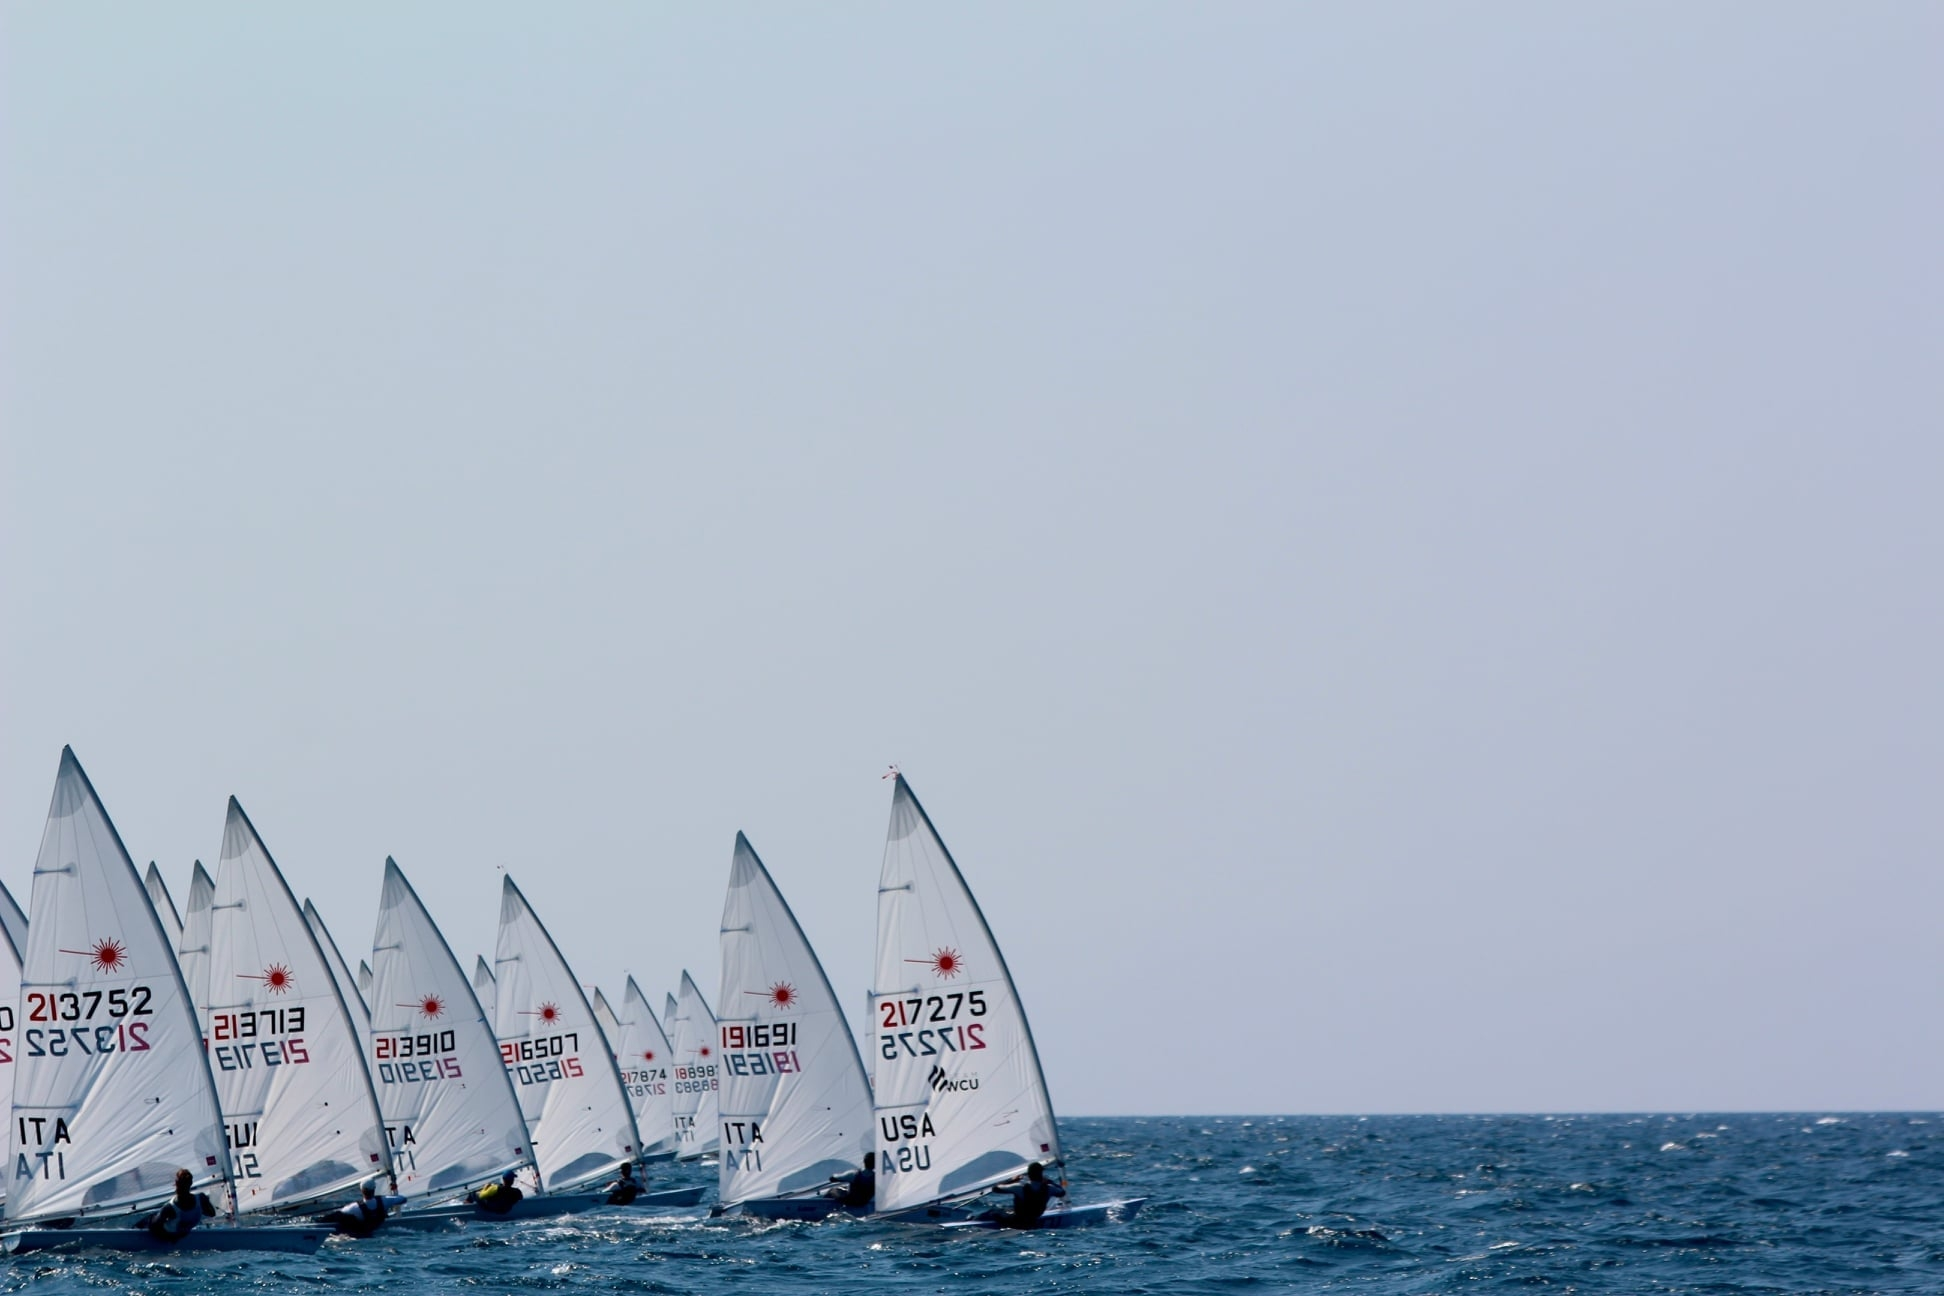 Olympic Classes - Italian Championship 2020 - Follonica ITA - Final Day